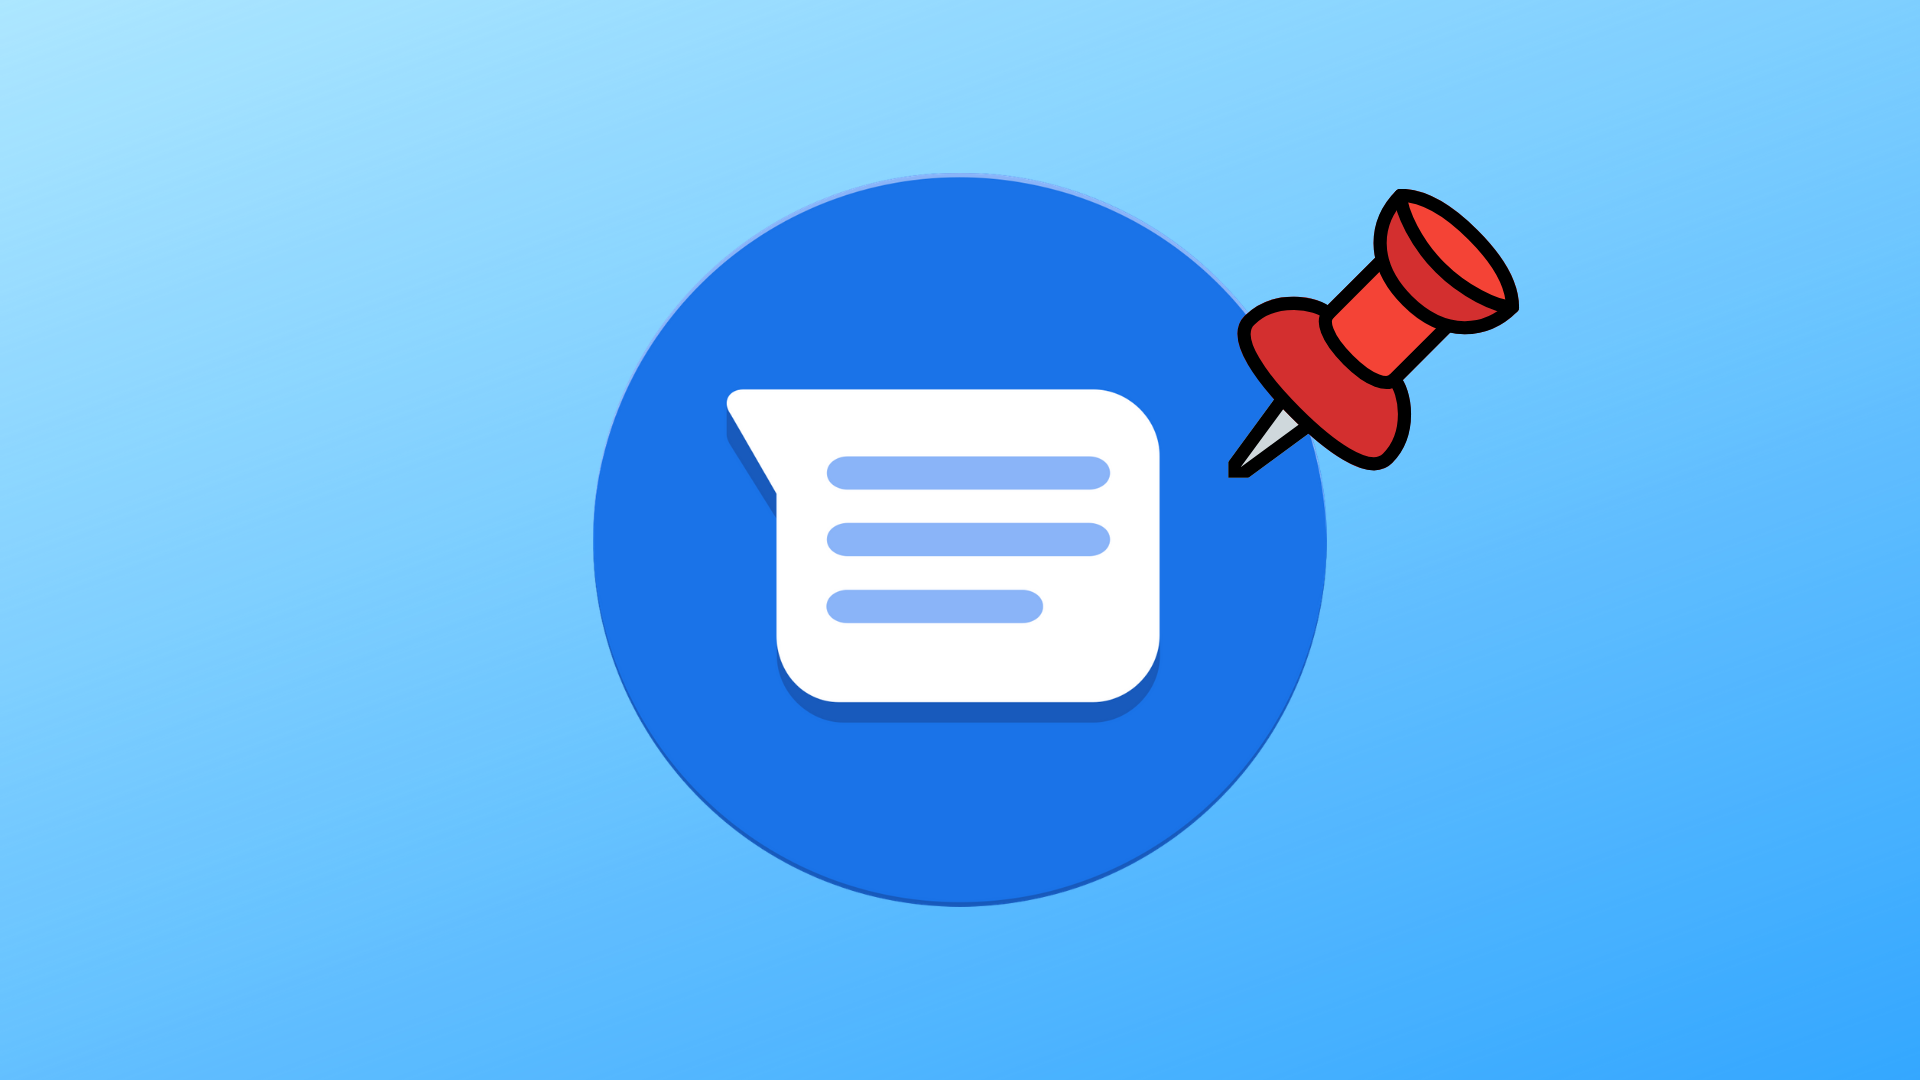 Pinned conversations are starting to arrive in Google Messages - Android Police